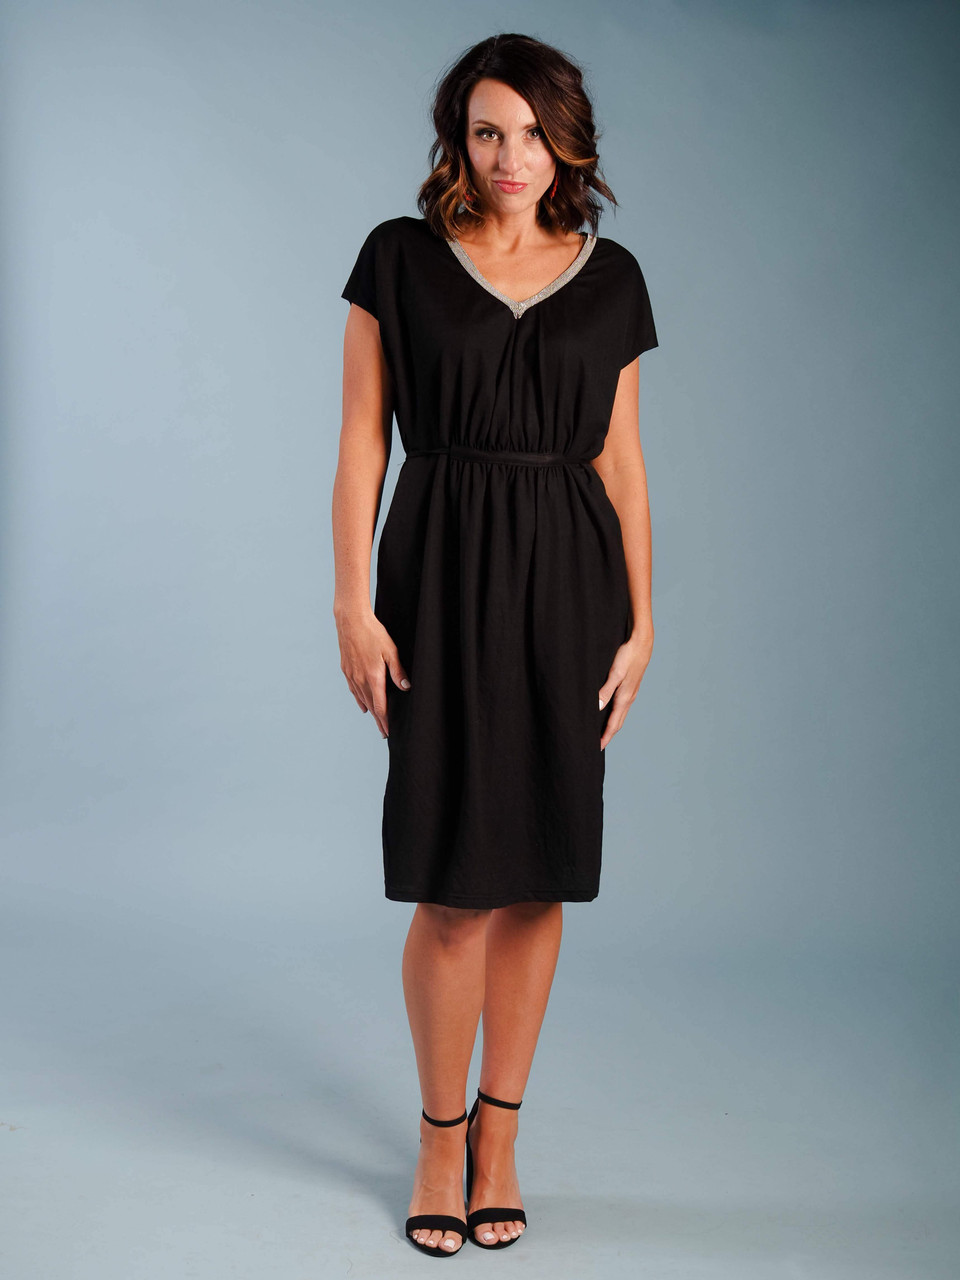 Soft jersey mid-length dress, Curved at the waist with a tie & pockets, Chic embellished silver V-neck, Model is wearing a small.